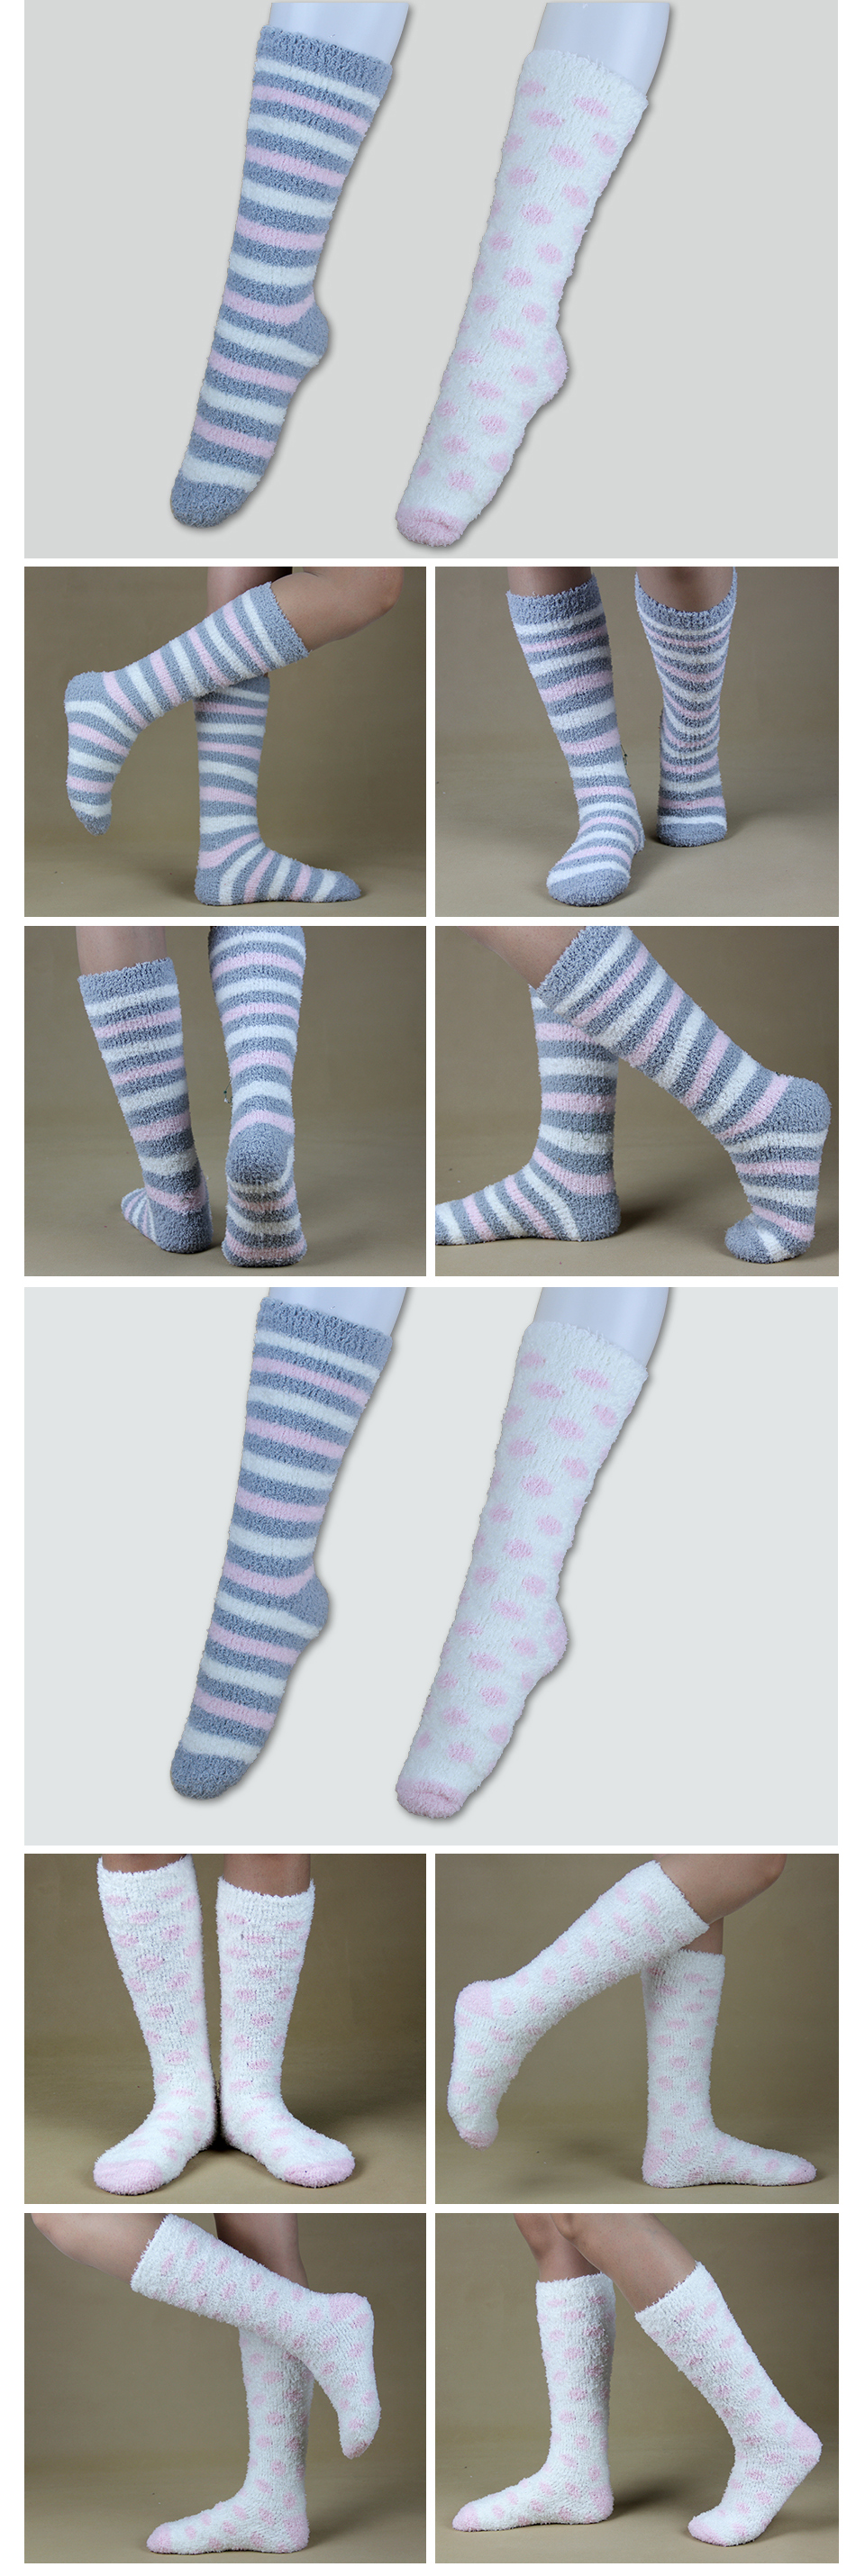 High Indoor Women Socks Soft Warm Spring Winter Brand Thick Striped Compression Hosiery Long Ladies Cosy Home Slipper Socks 2PK 8